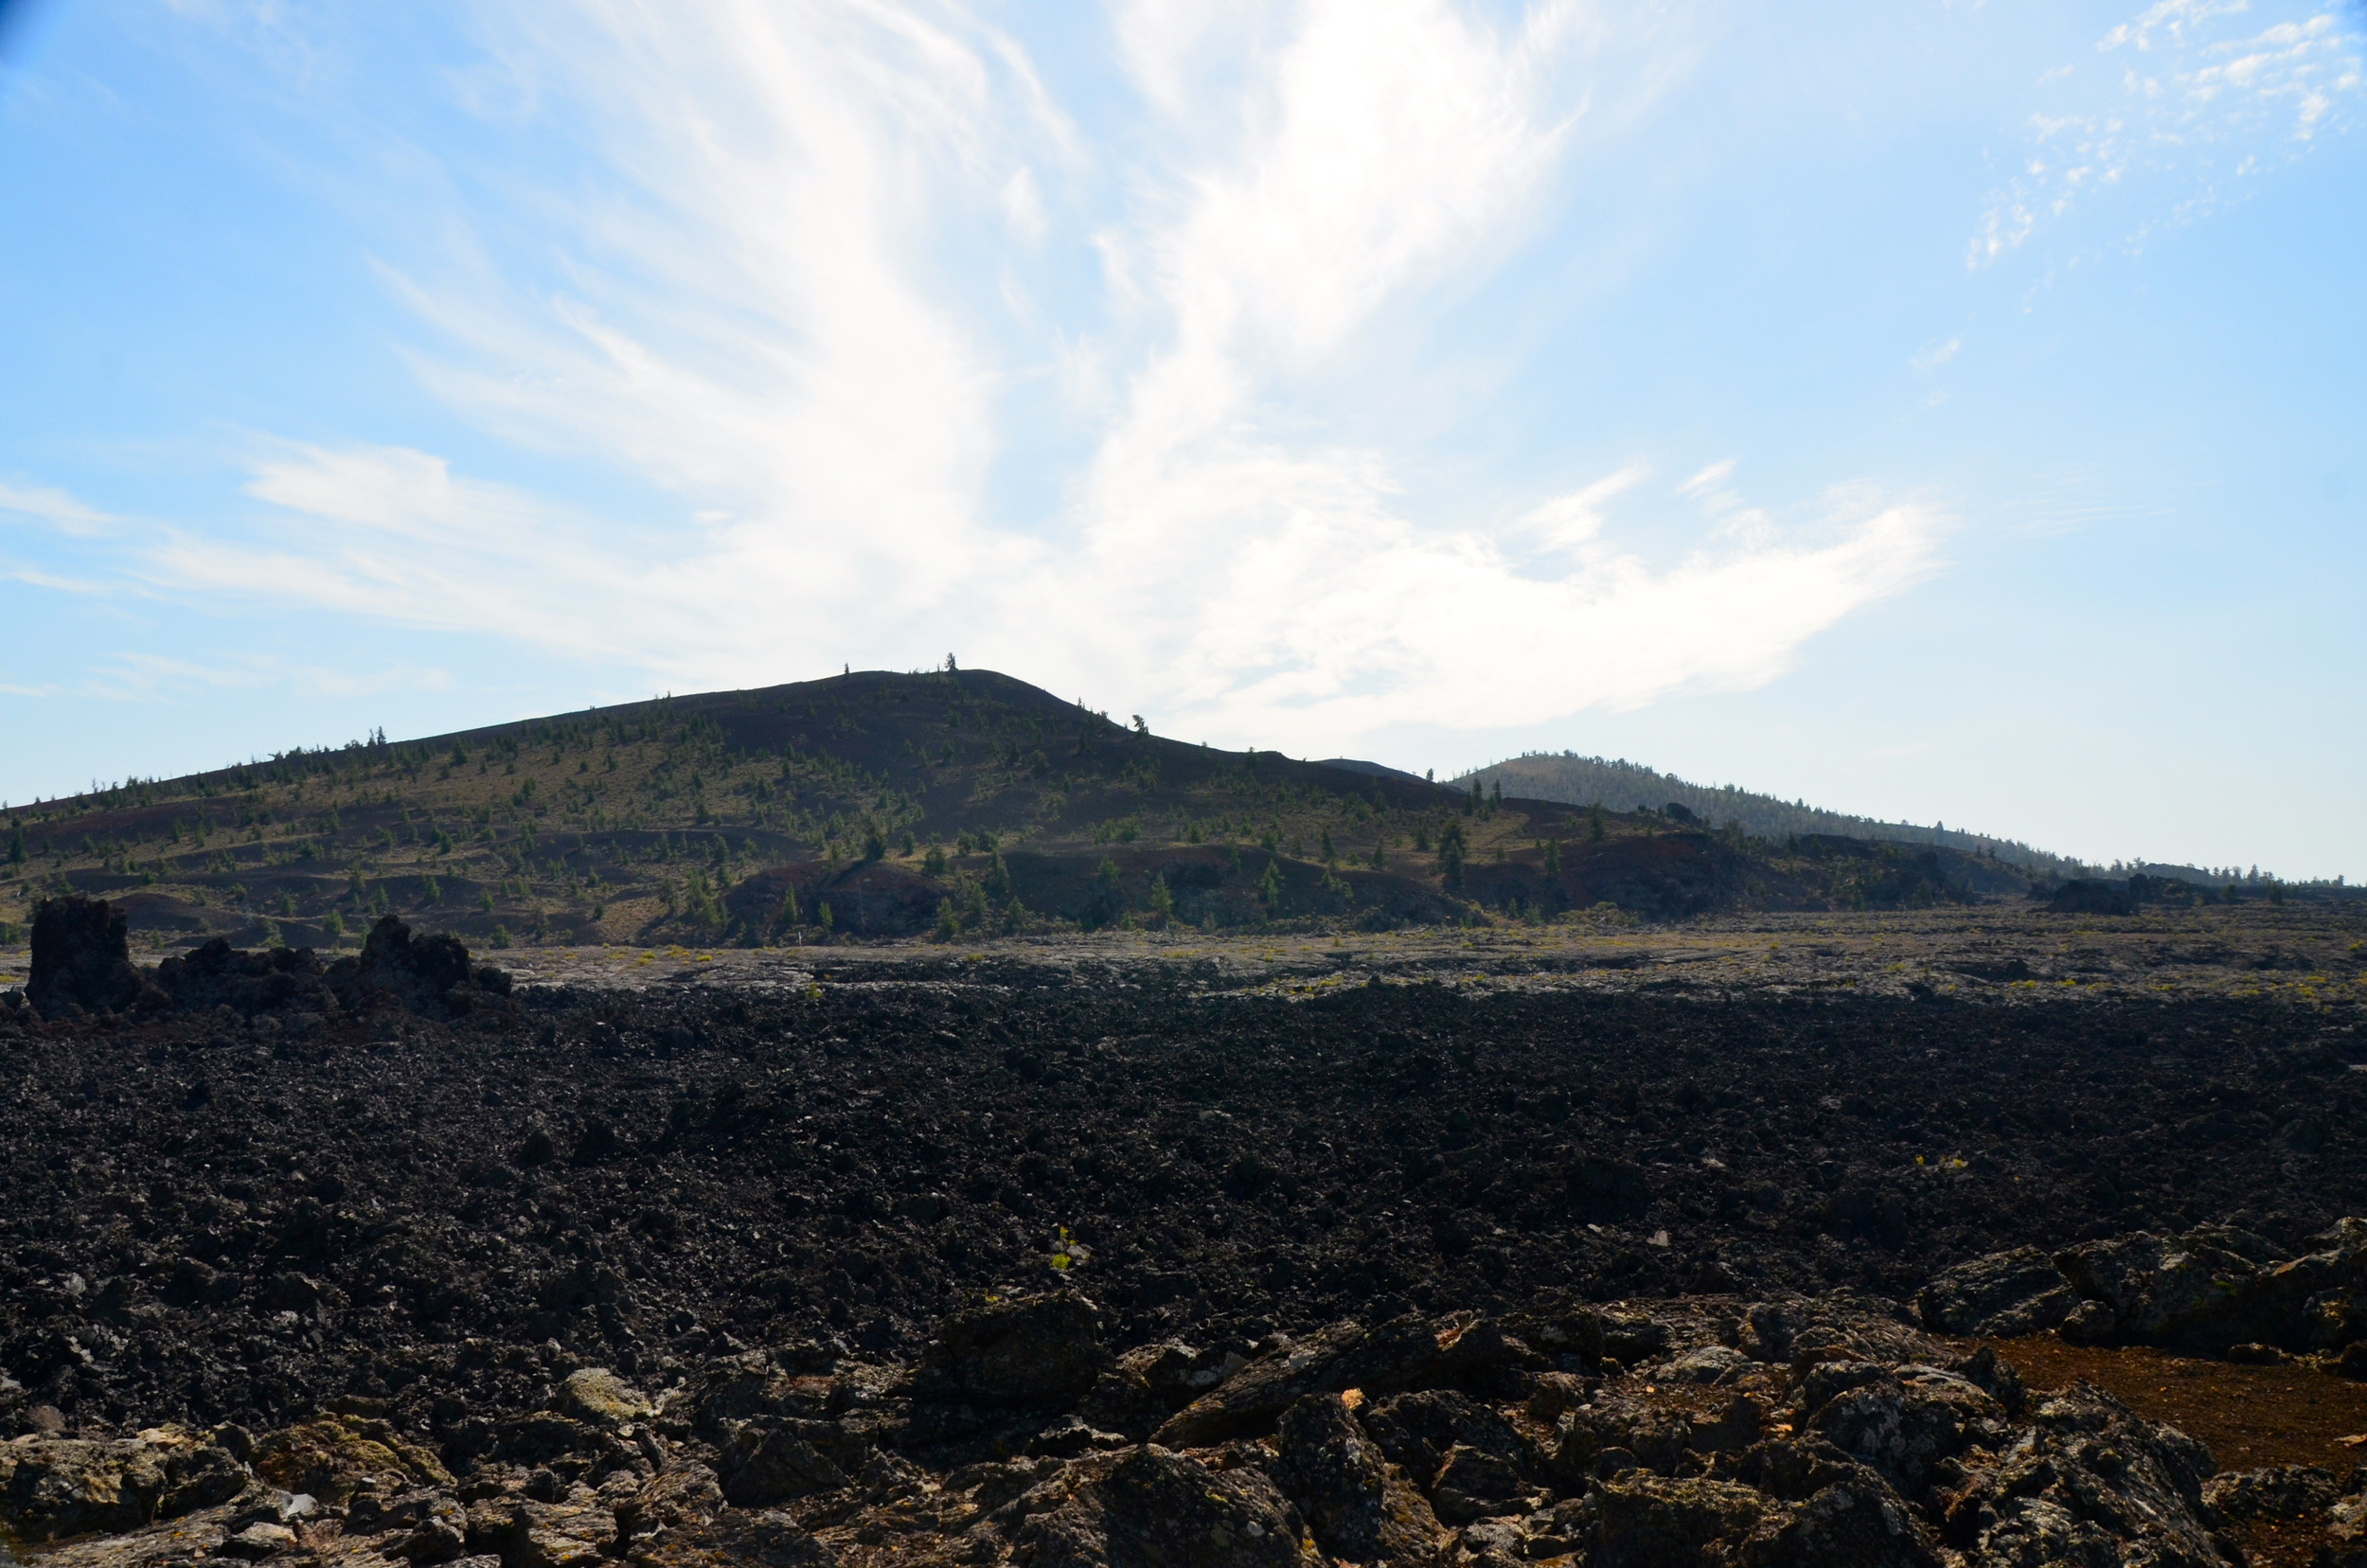 Looking out across the Lava  fields